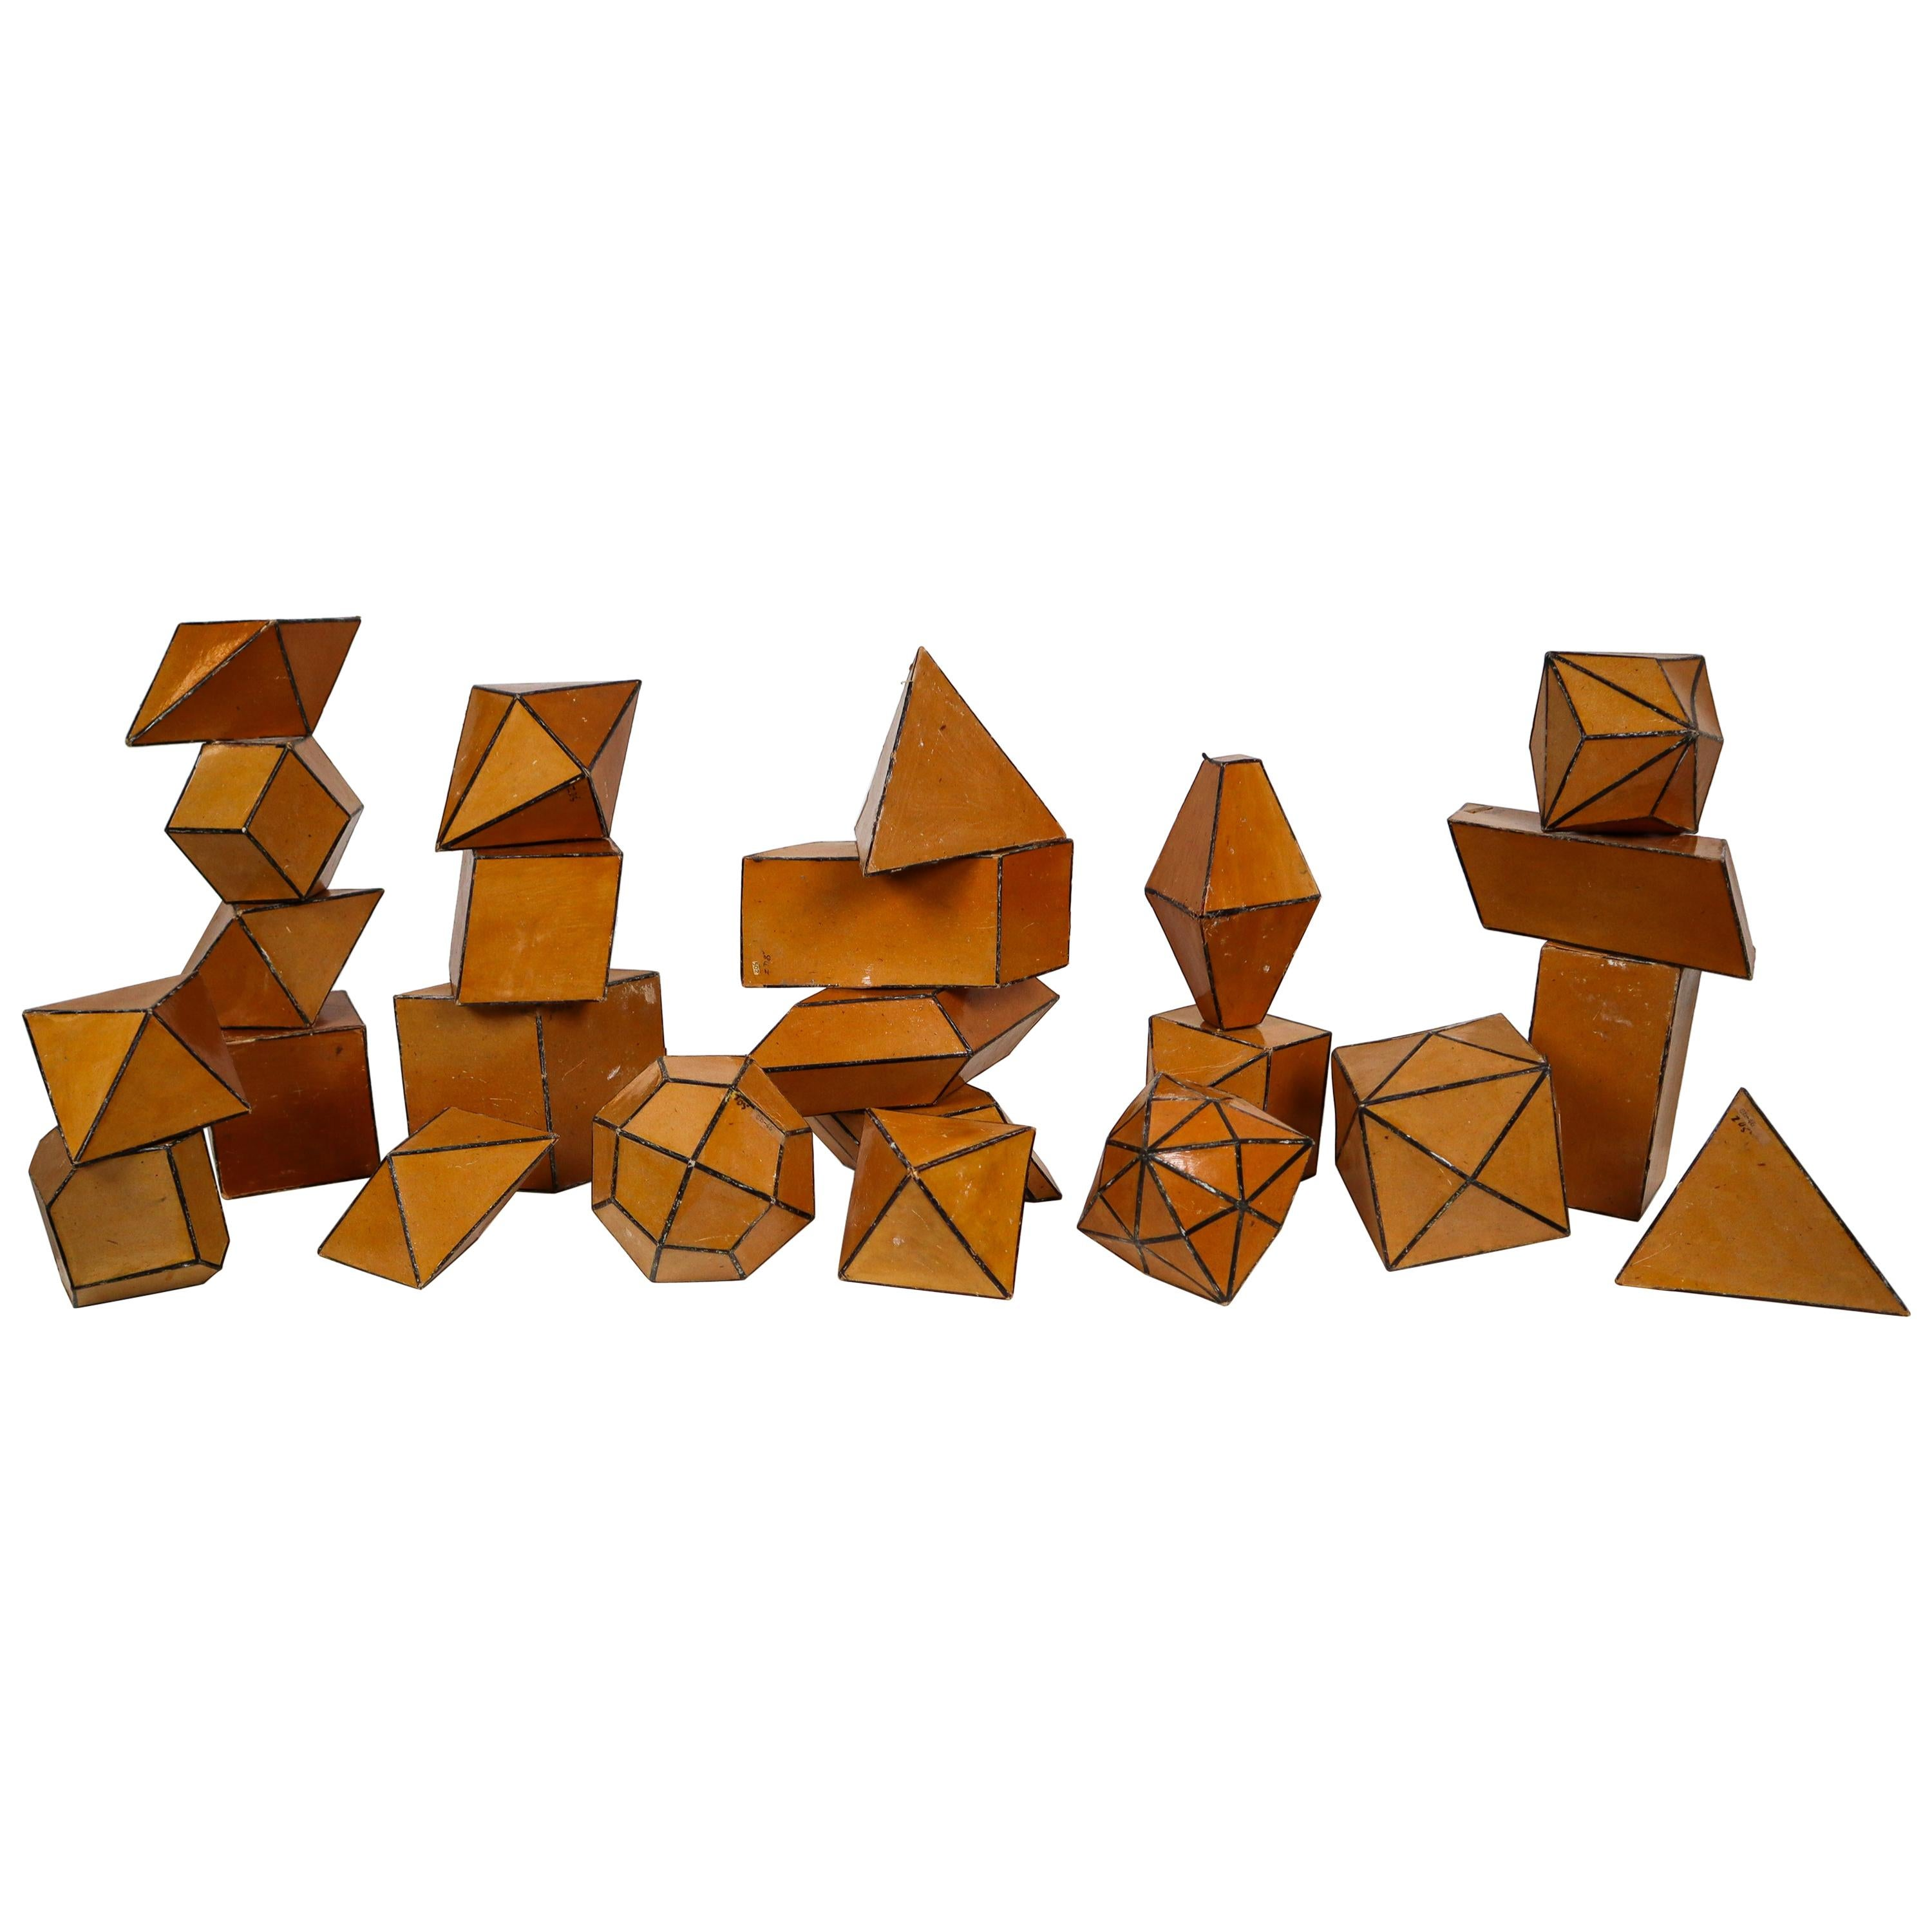 Set of 24 Geometric Science Cardboard Classroom Crystal Models Praque, 1920